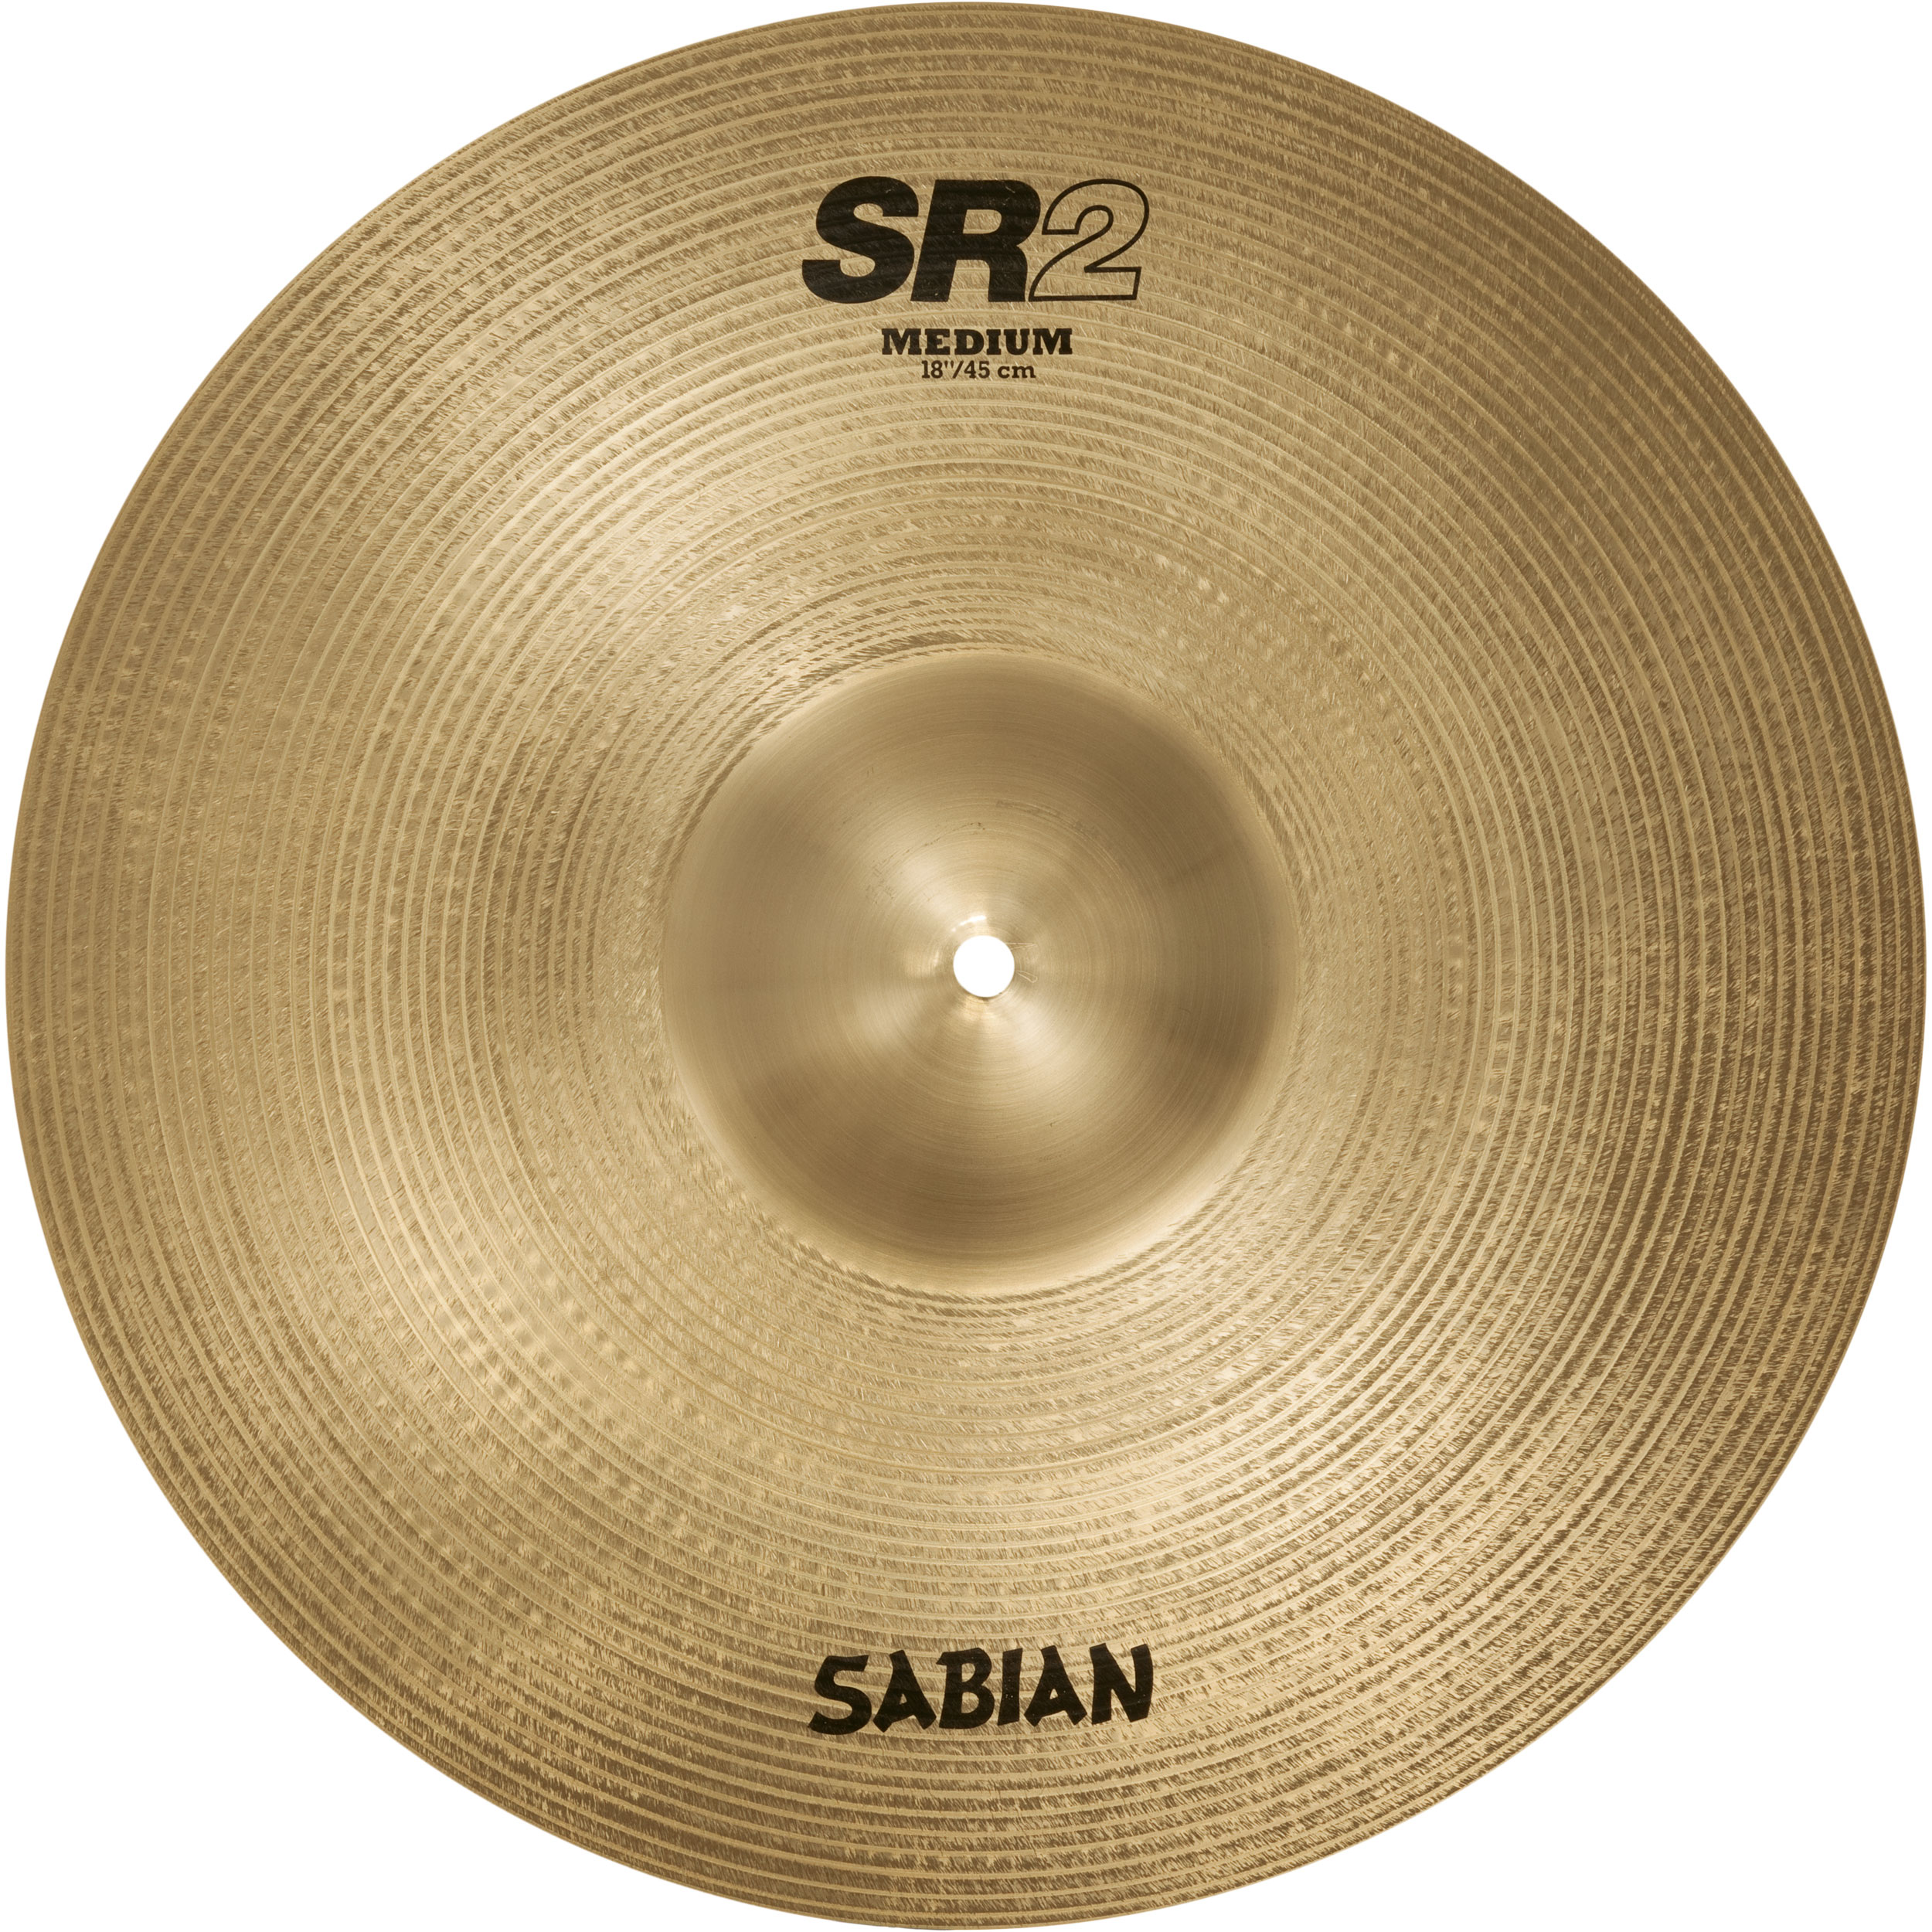 "Sabian 18"" SR2 Medium Cymbal"